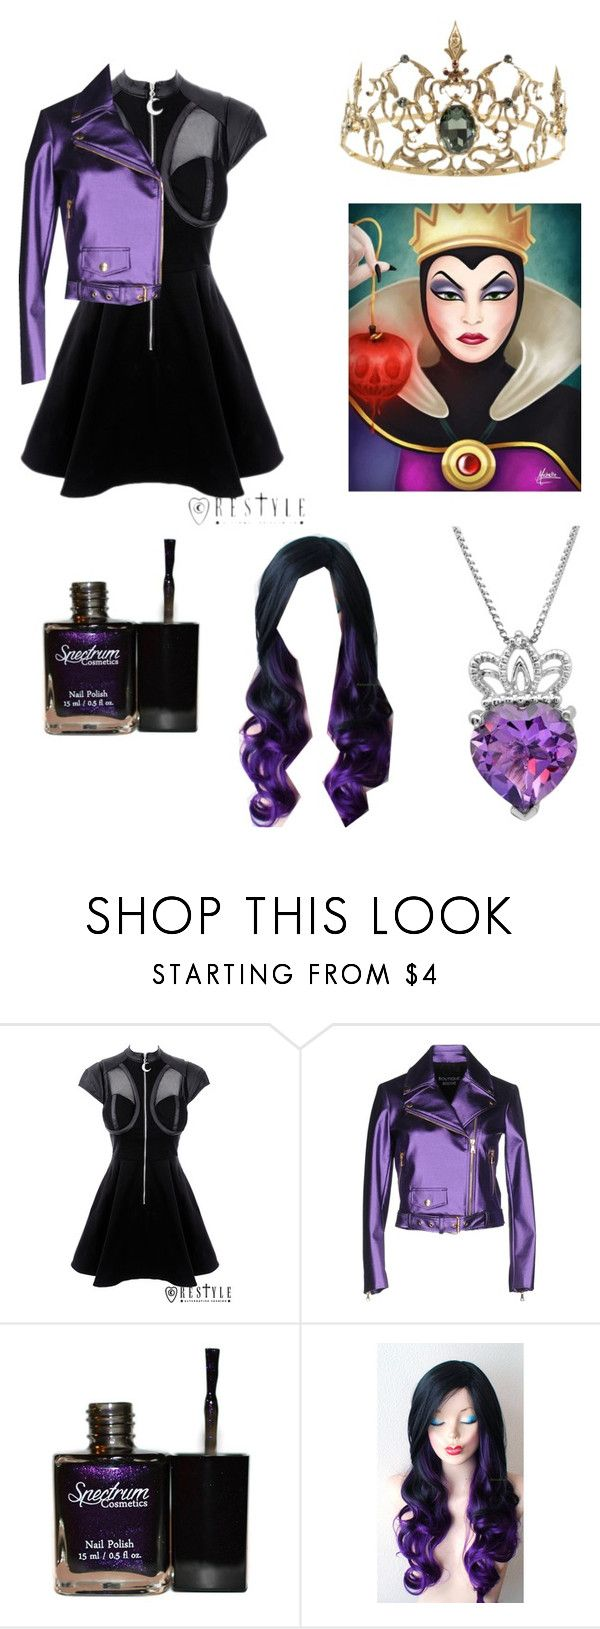 """""""Evil Queen costume"""" by kawaiipusheen00 ❤ liked on Polyvore featuring Boutique Moschino, Amanda Rose Collection, Halloween, look, fashiontrend, contestentry and fashionset"""